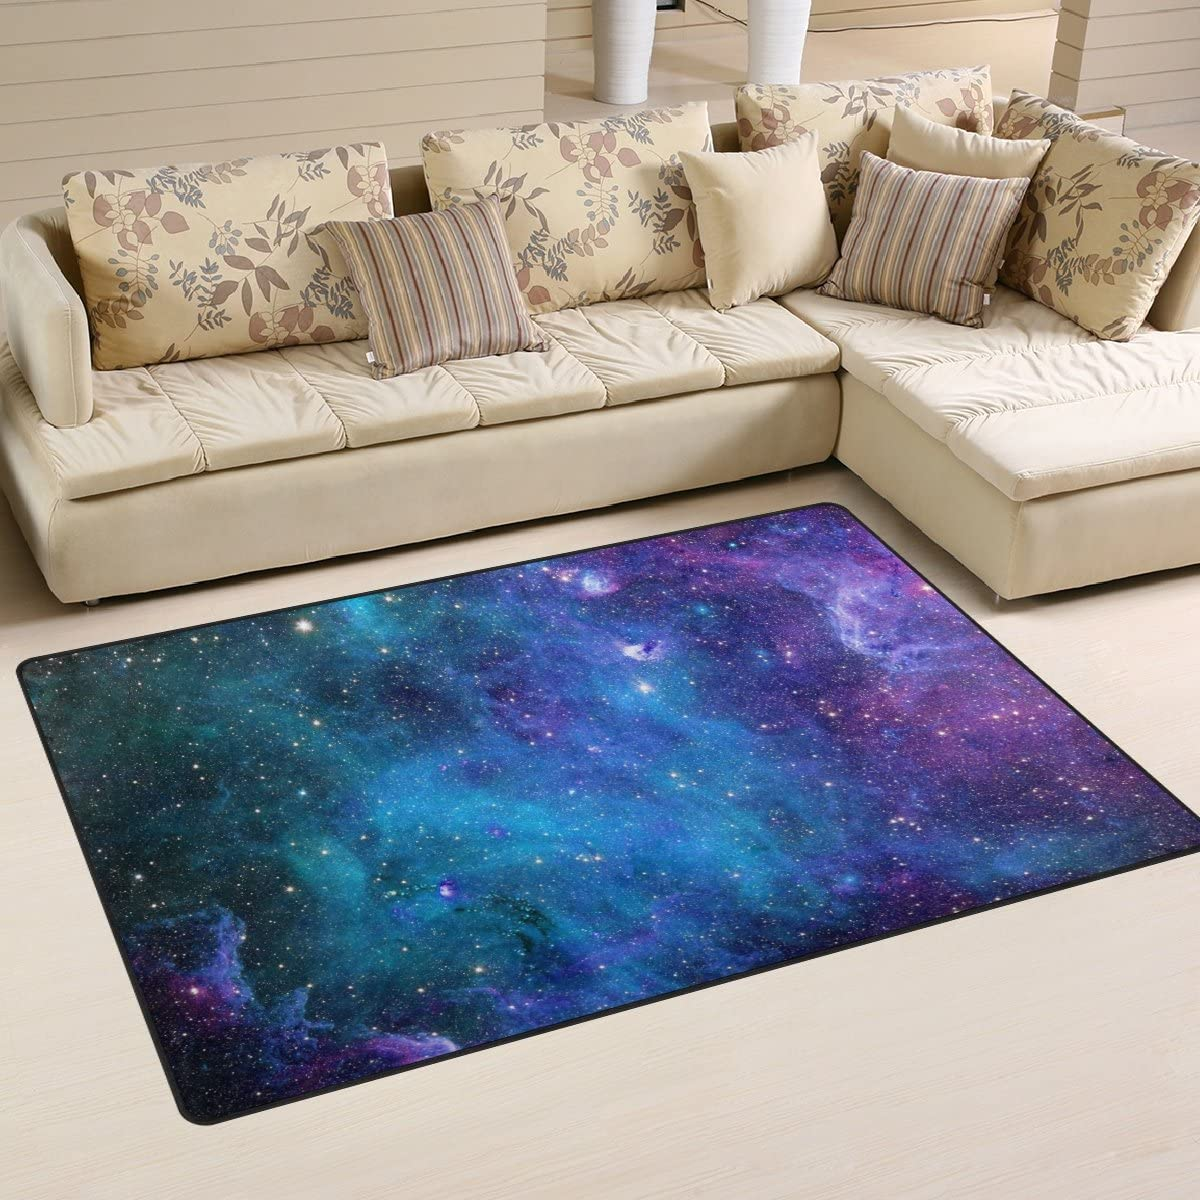 Sunlome Space Universe Nebula Galaxy Starry Area Rug Rugs Non-Slip Indoor Outdoor Floor Mat Doormats for Home Decor 60 x 39 inches